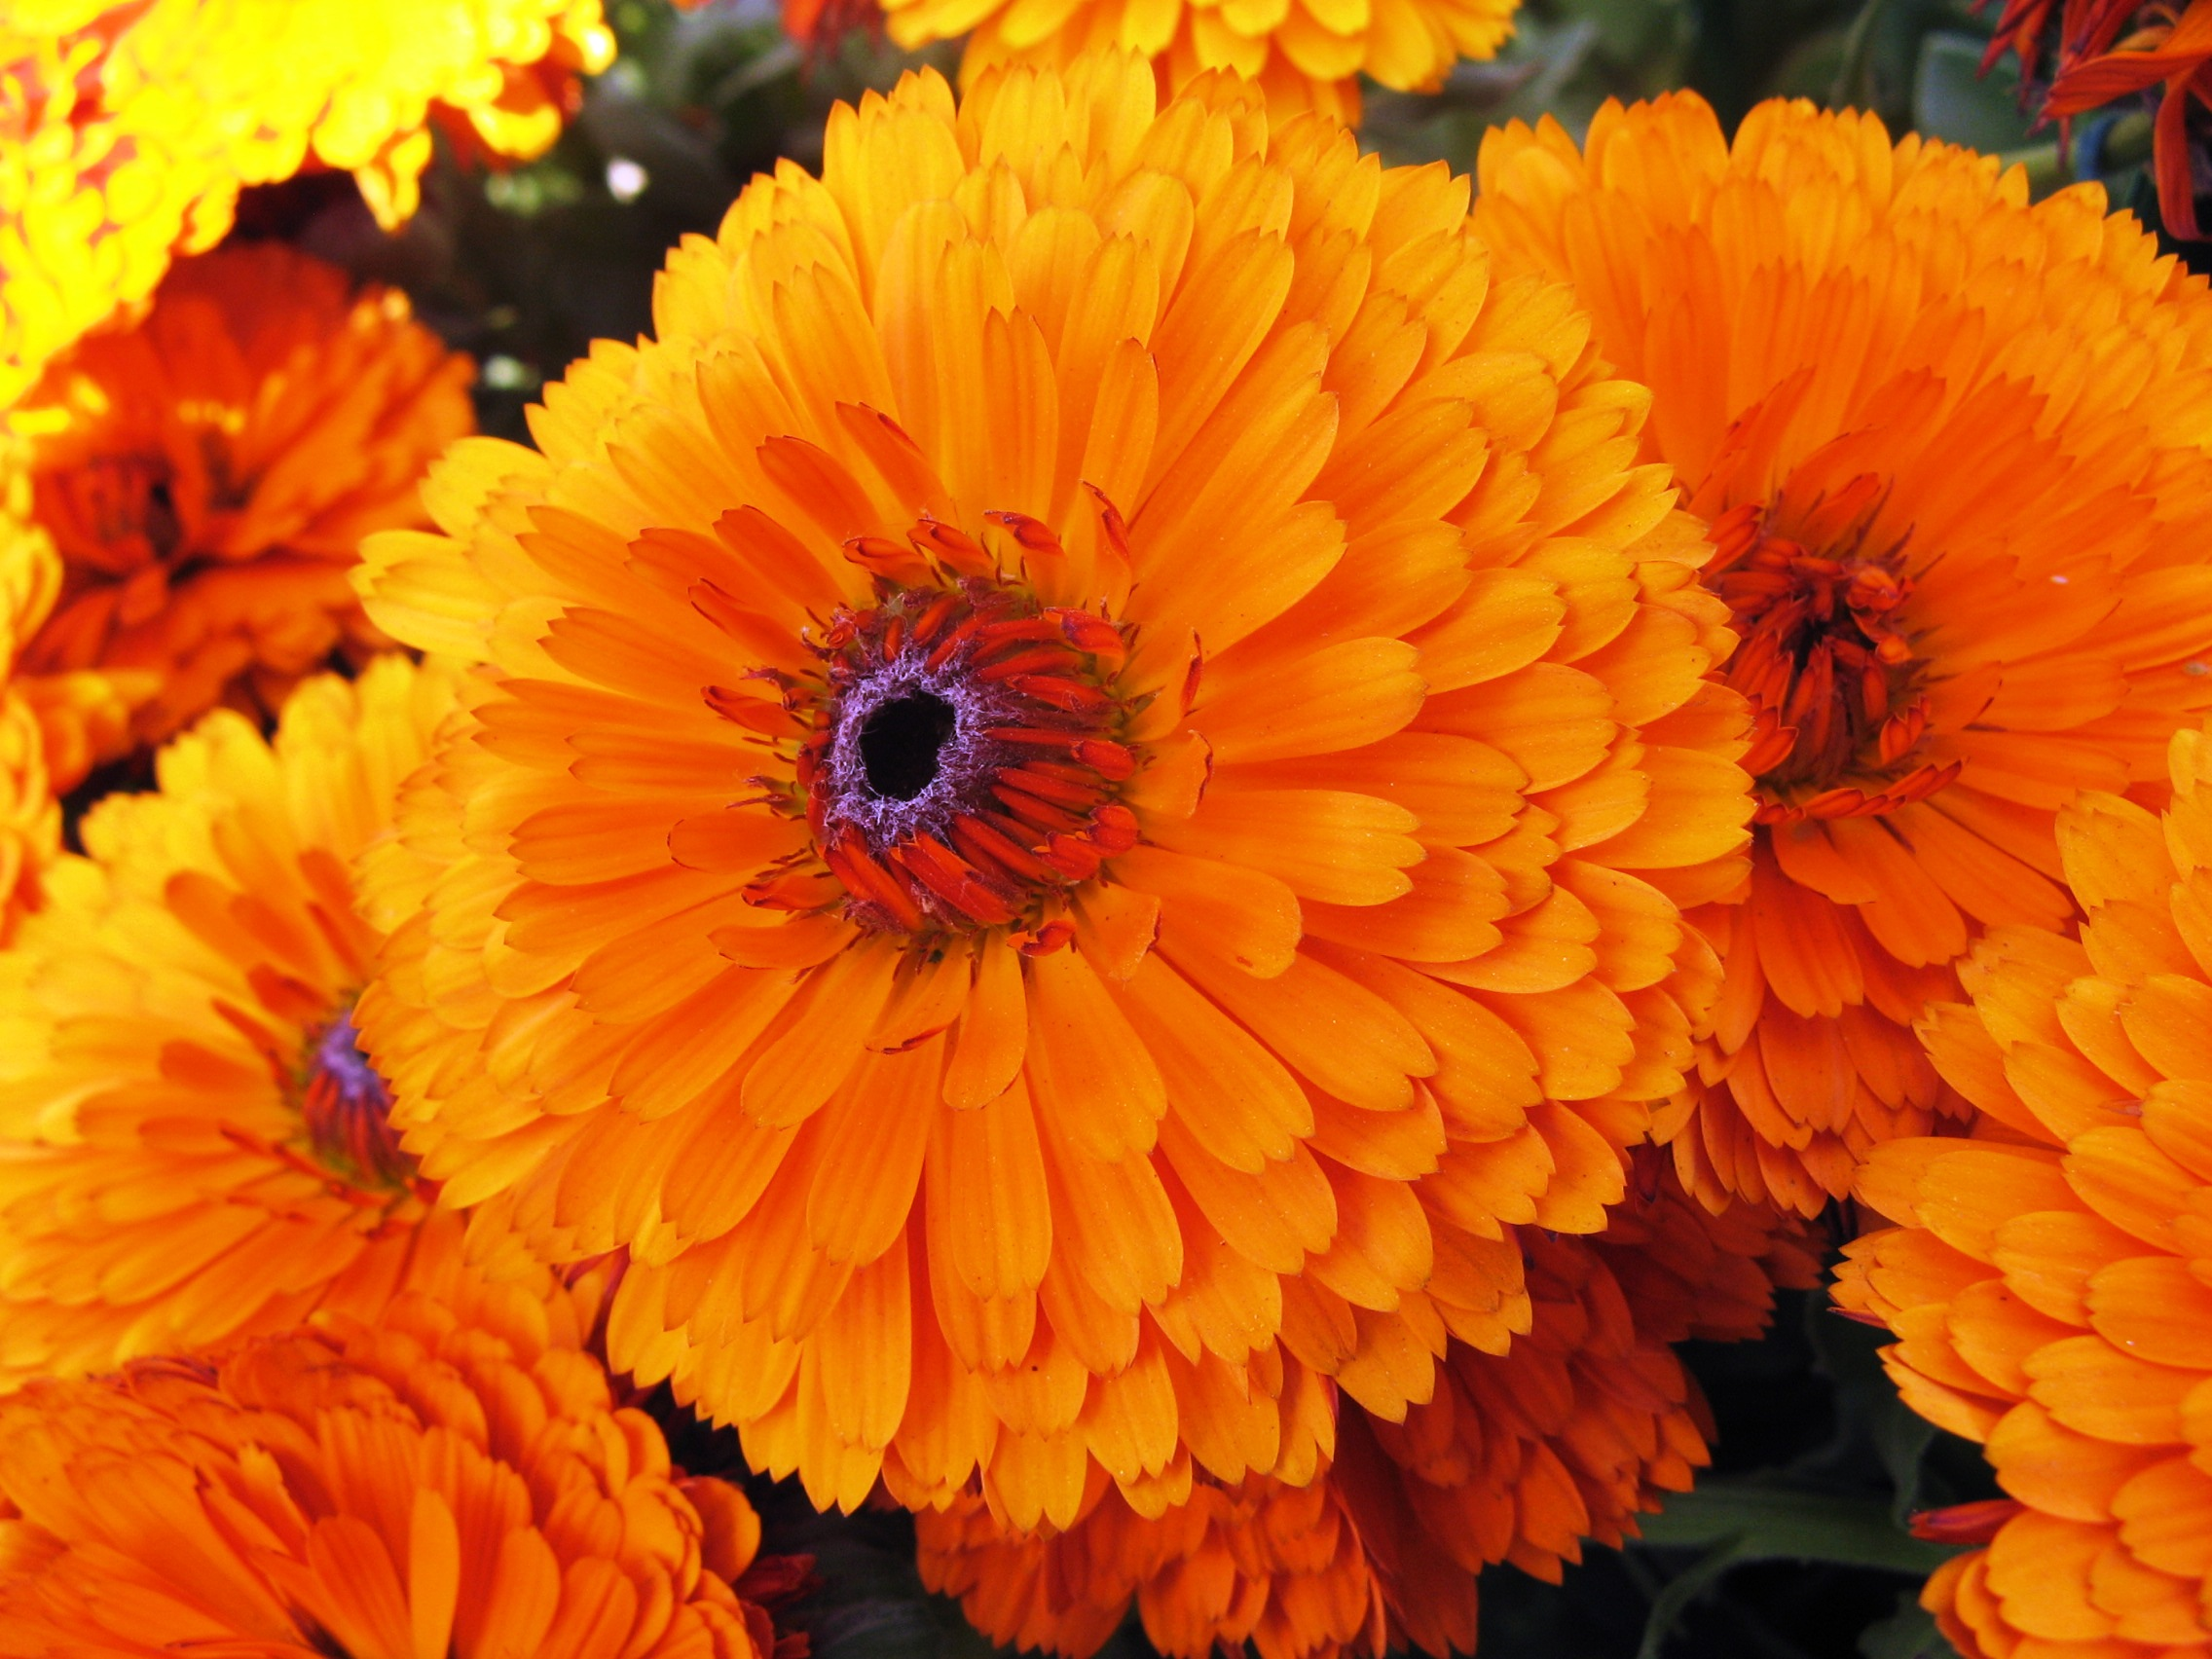 http://upload.wikimedia.org/wikipedia/commons/3/34/Calendula_officinalis-2.JPG